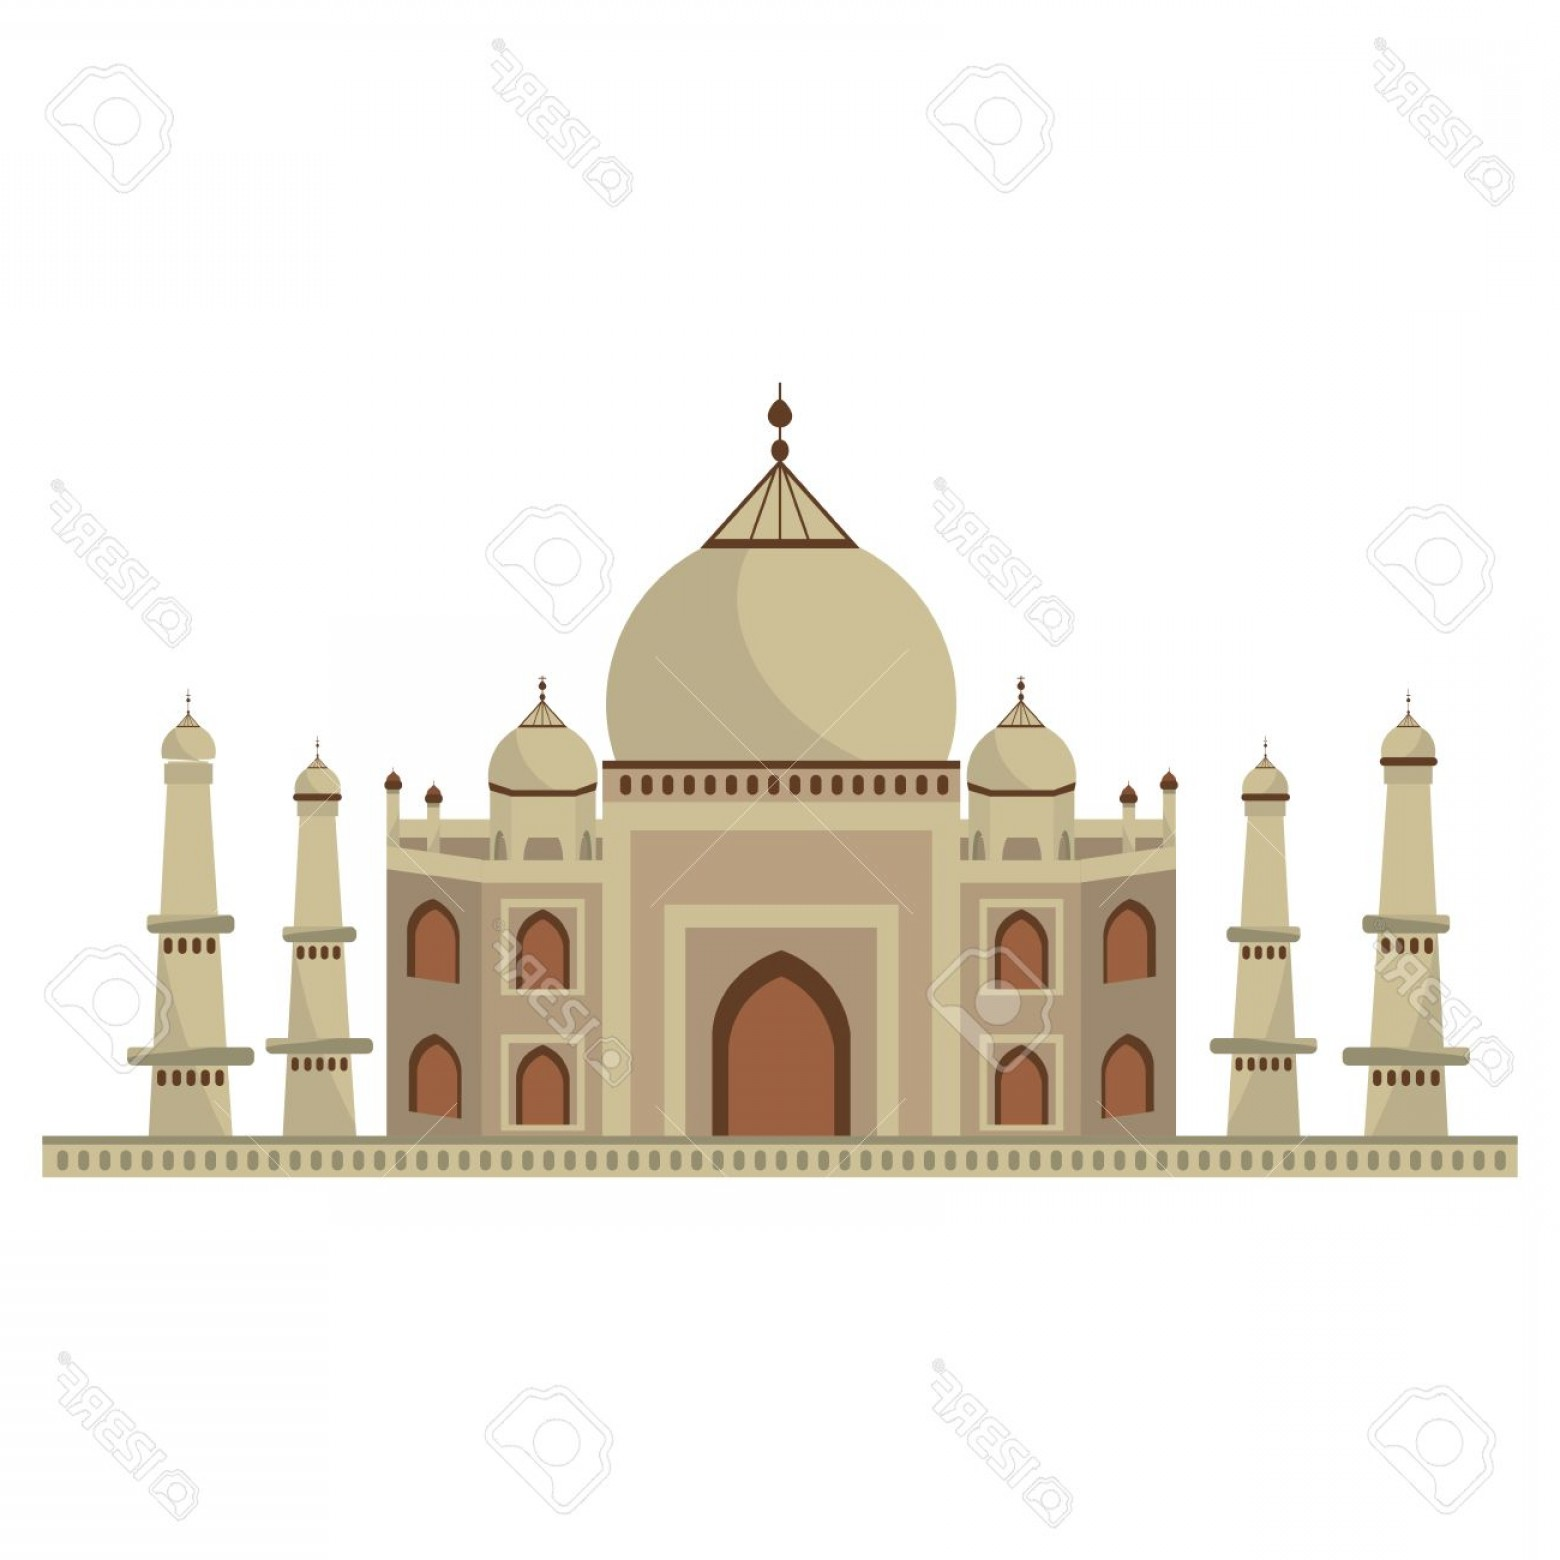 Taj Mahal Vector: Photostock Vector Taj Mahal Architecture Icon Vector Illustration Graphic Design